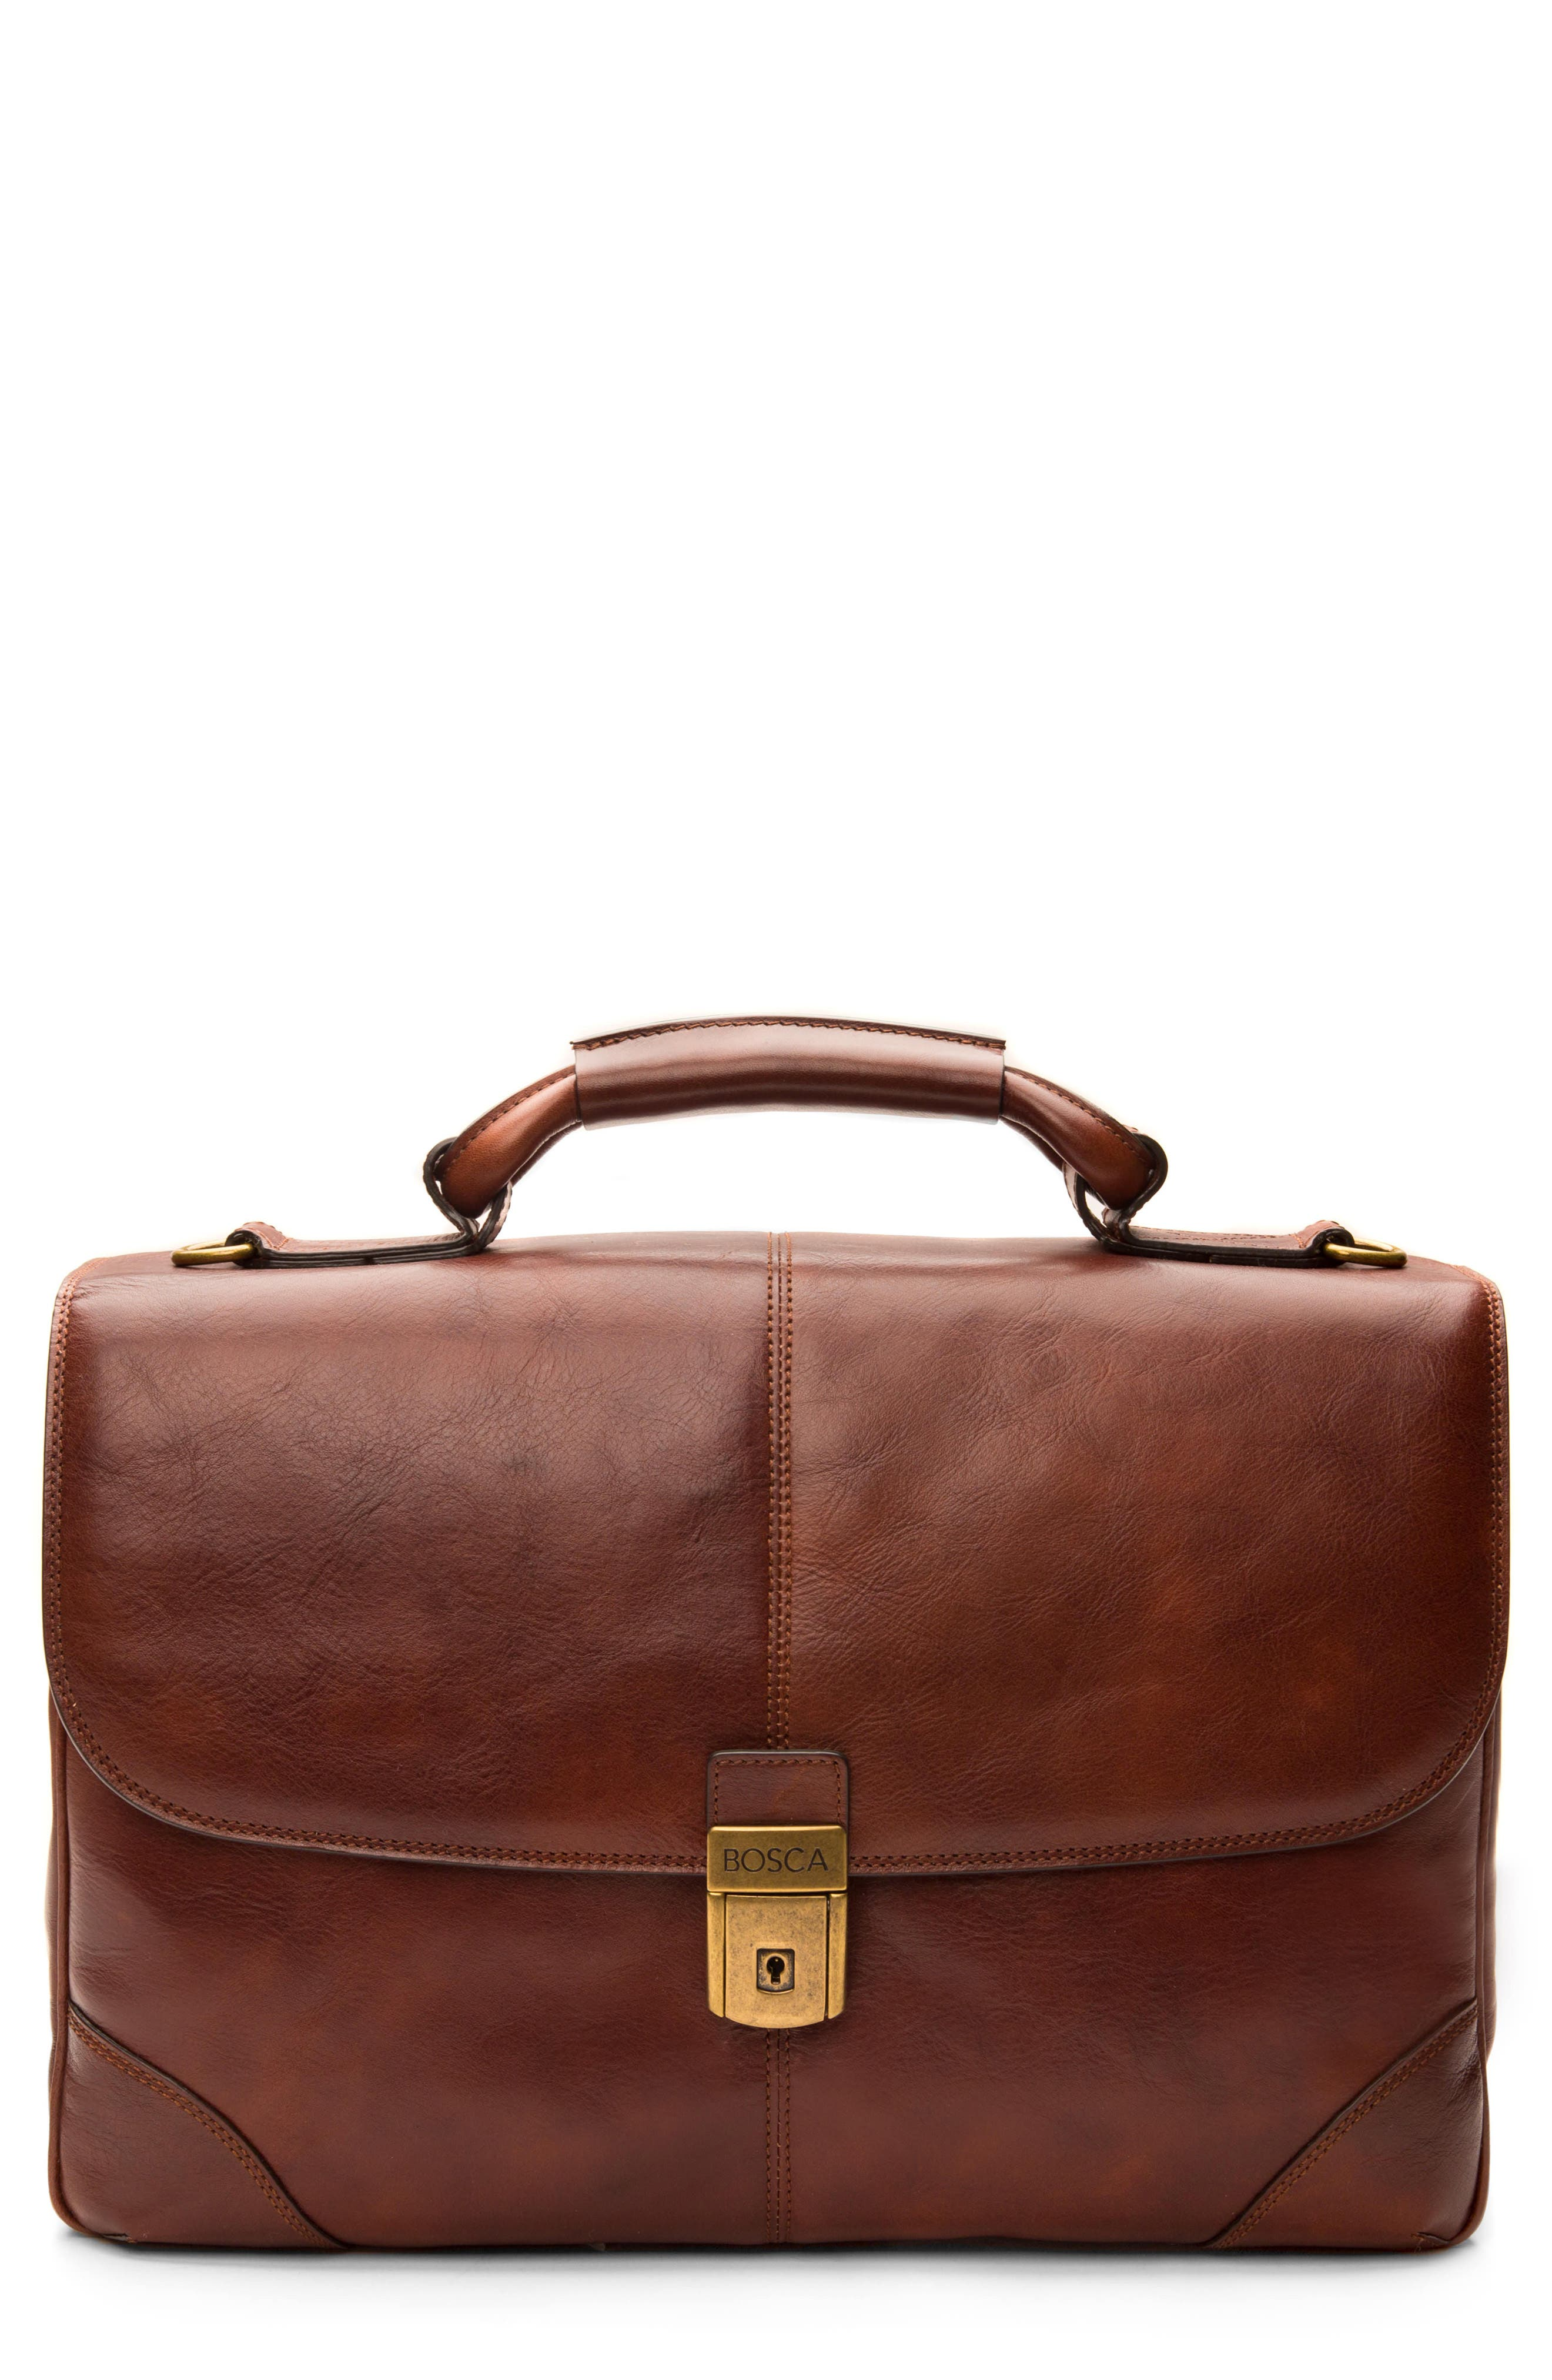 Leather Briefcase,                             Main thumbnail 1, color,                             200